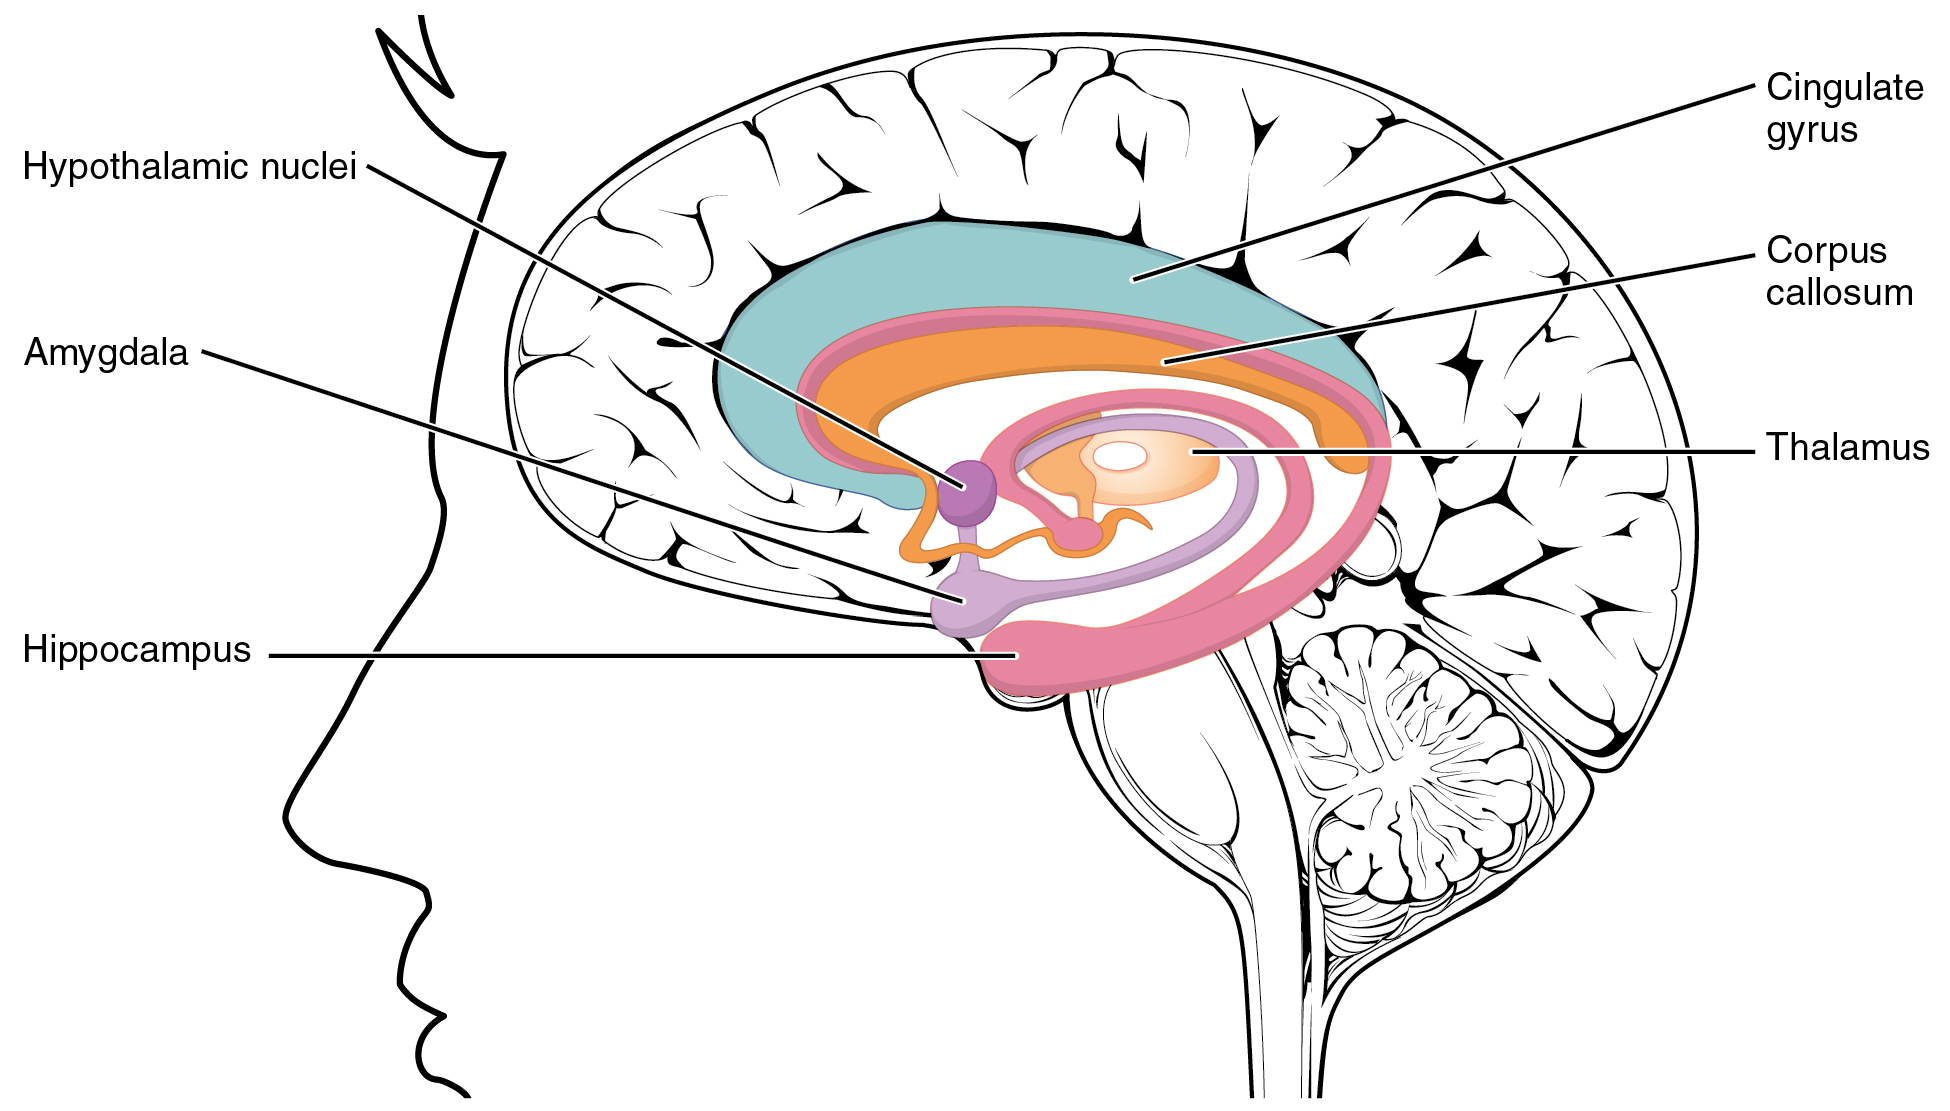 This figure shows the location of the limbic lobe and its major parts in the human brain.